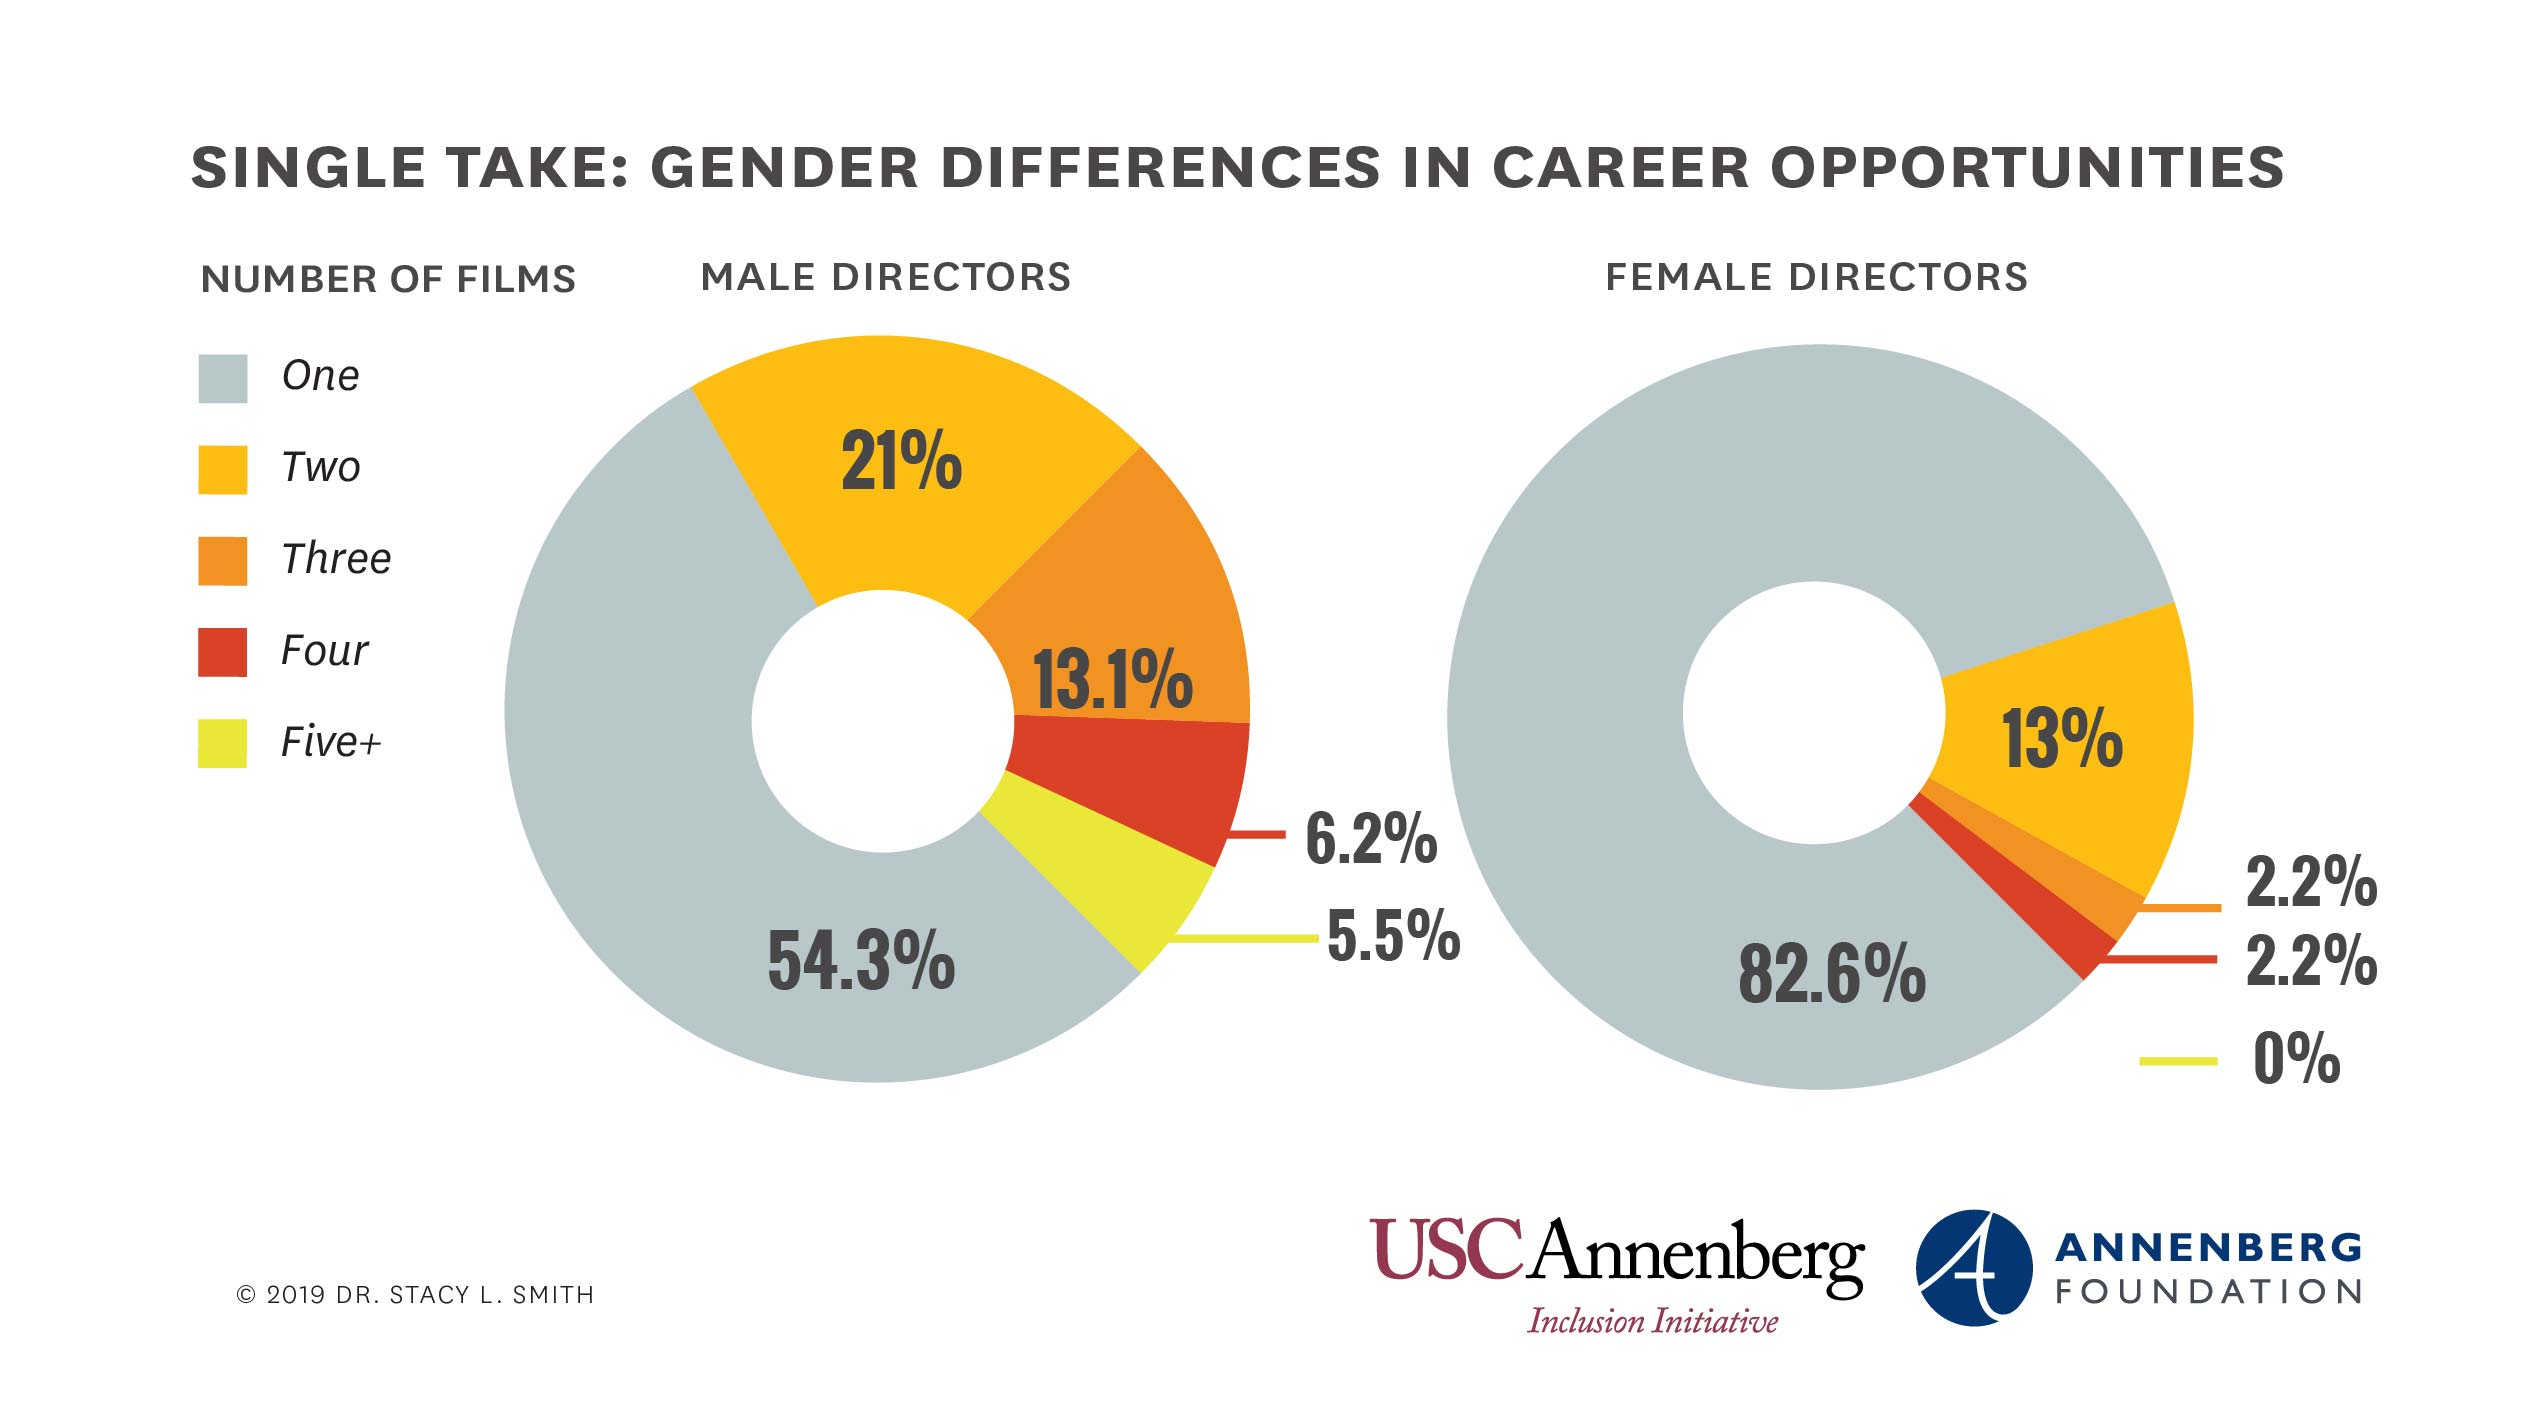 Annenberg Inclusion Initiative breaks down the differences in career opportunities for male and female directors